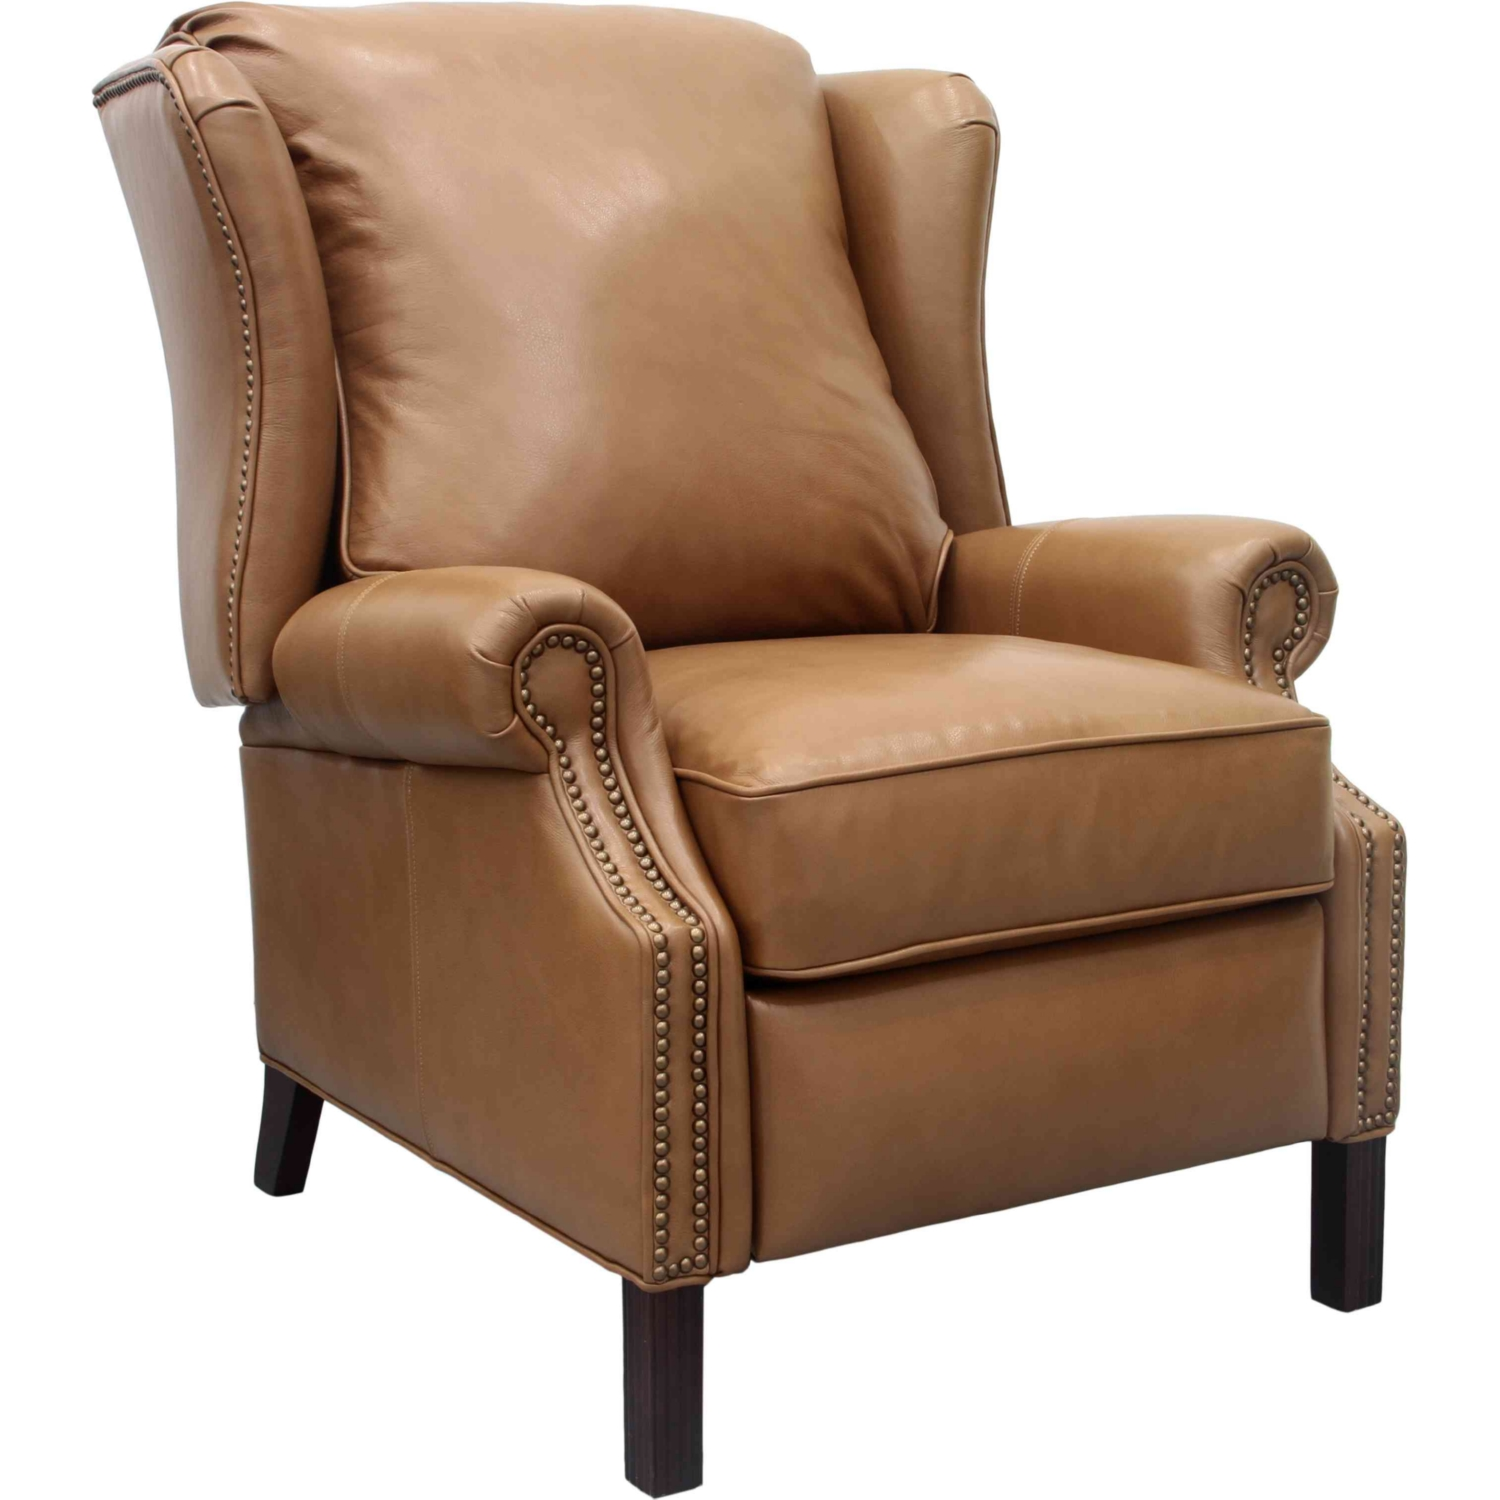 Woodland Recliner in Shoreham Ponytail Leather  sc 1 st  Dynamic Home Decor & BarcaLounger 7-3163-5700-86 Woodland Recliner in Shoreham Ponytail ... islam-shia.org